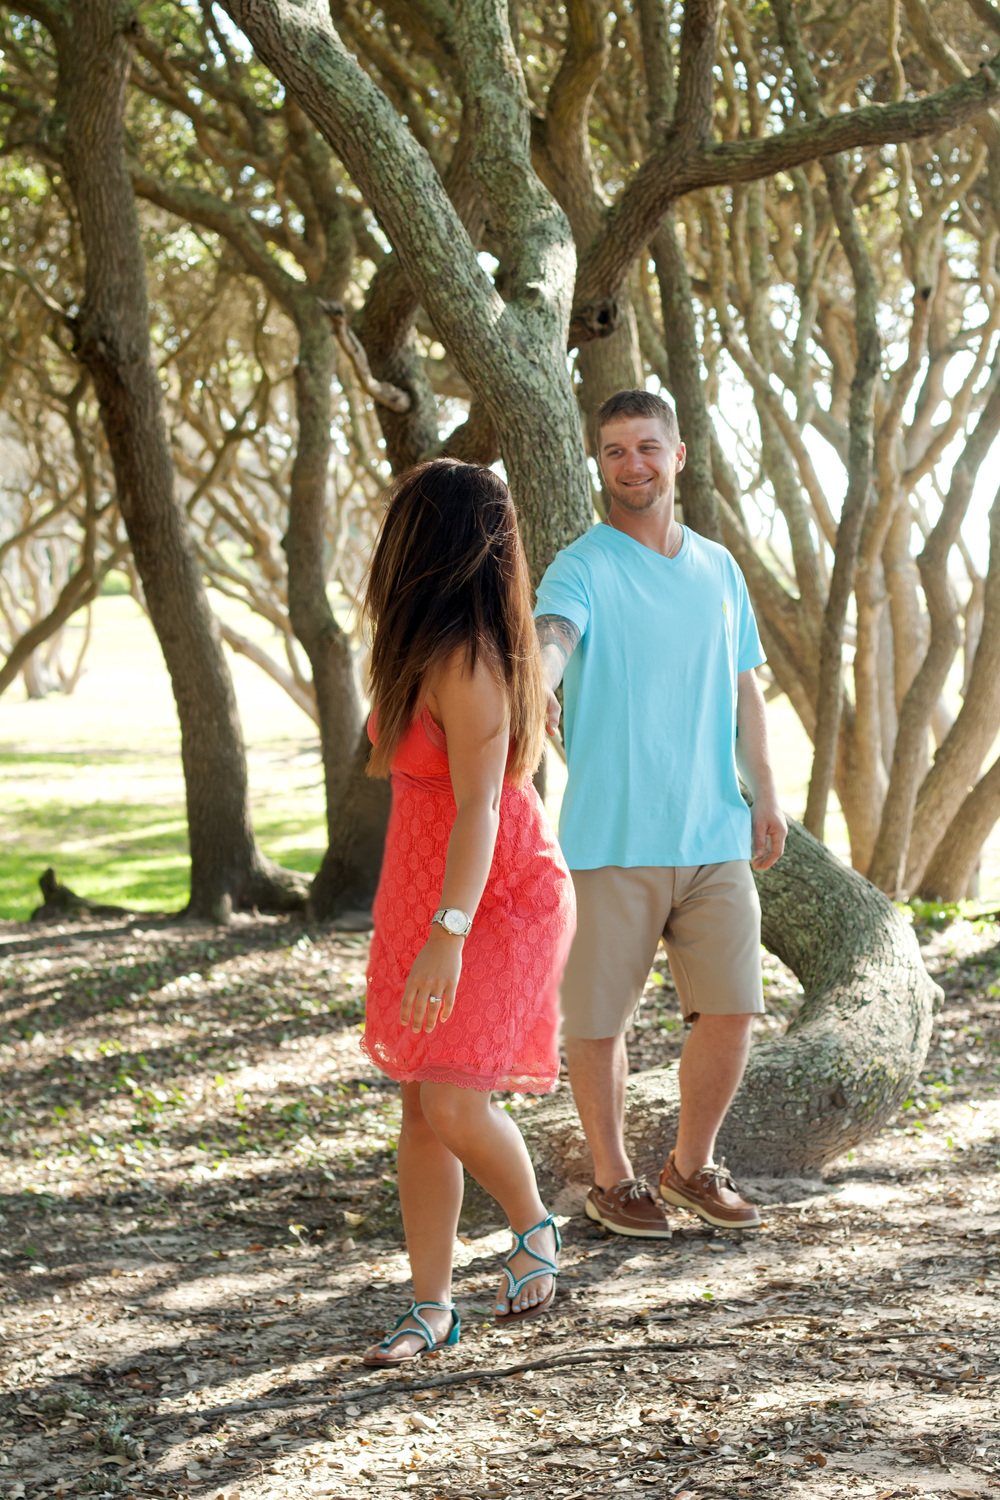 TIFFANY_ABRUZZO_PHOTOGRAPHY_ENGAGEMENT_8.jpg